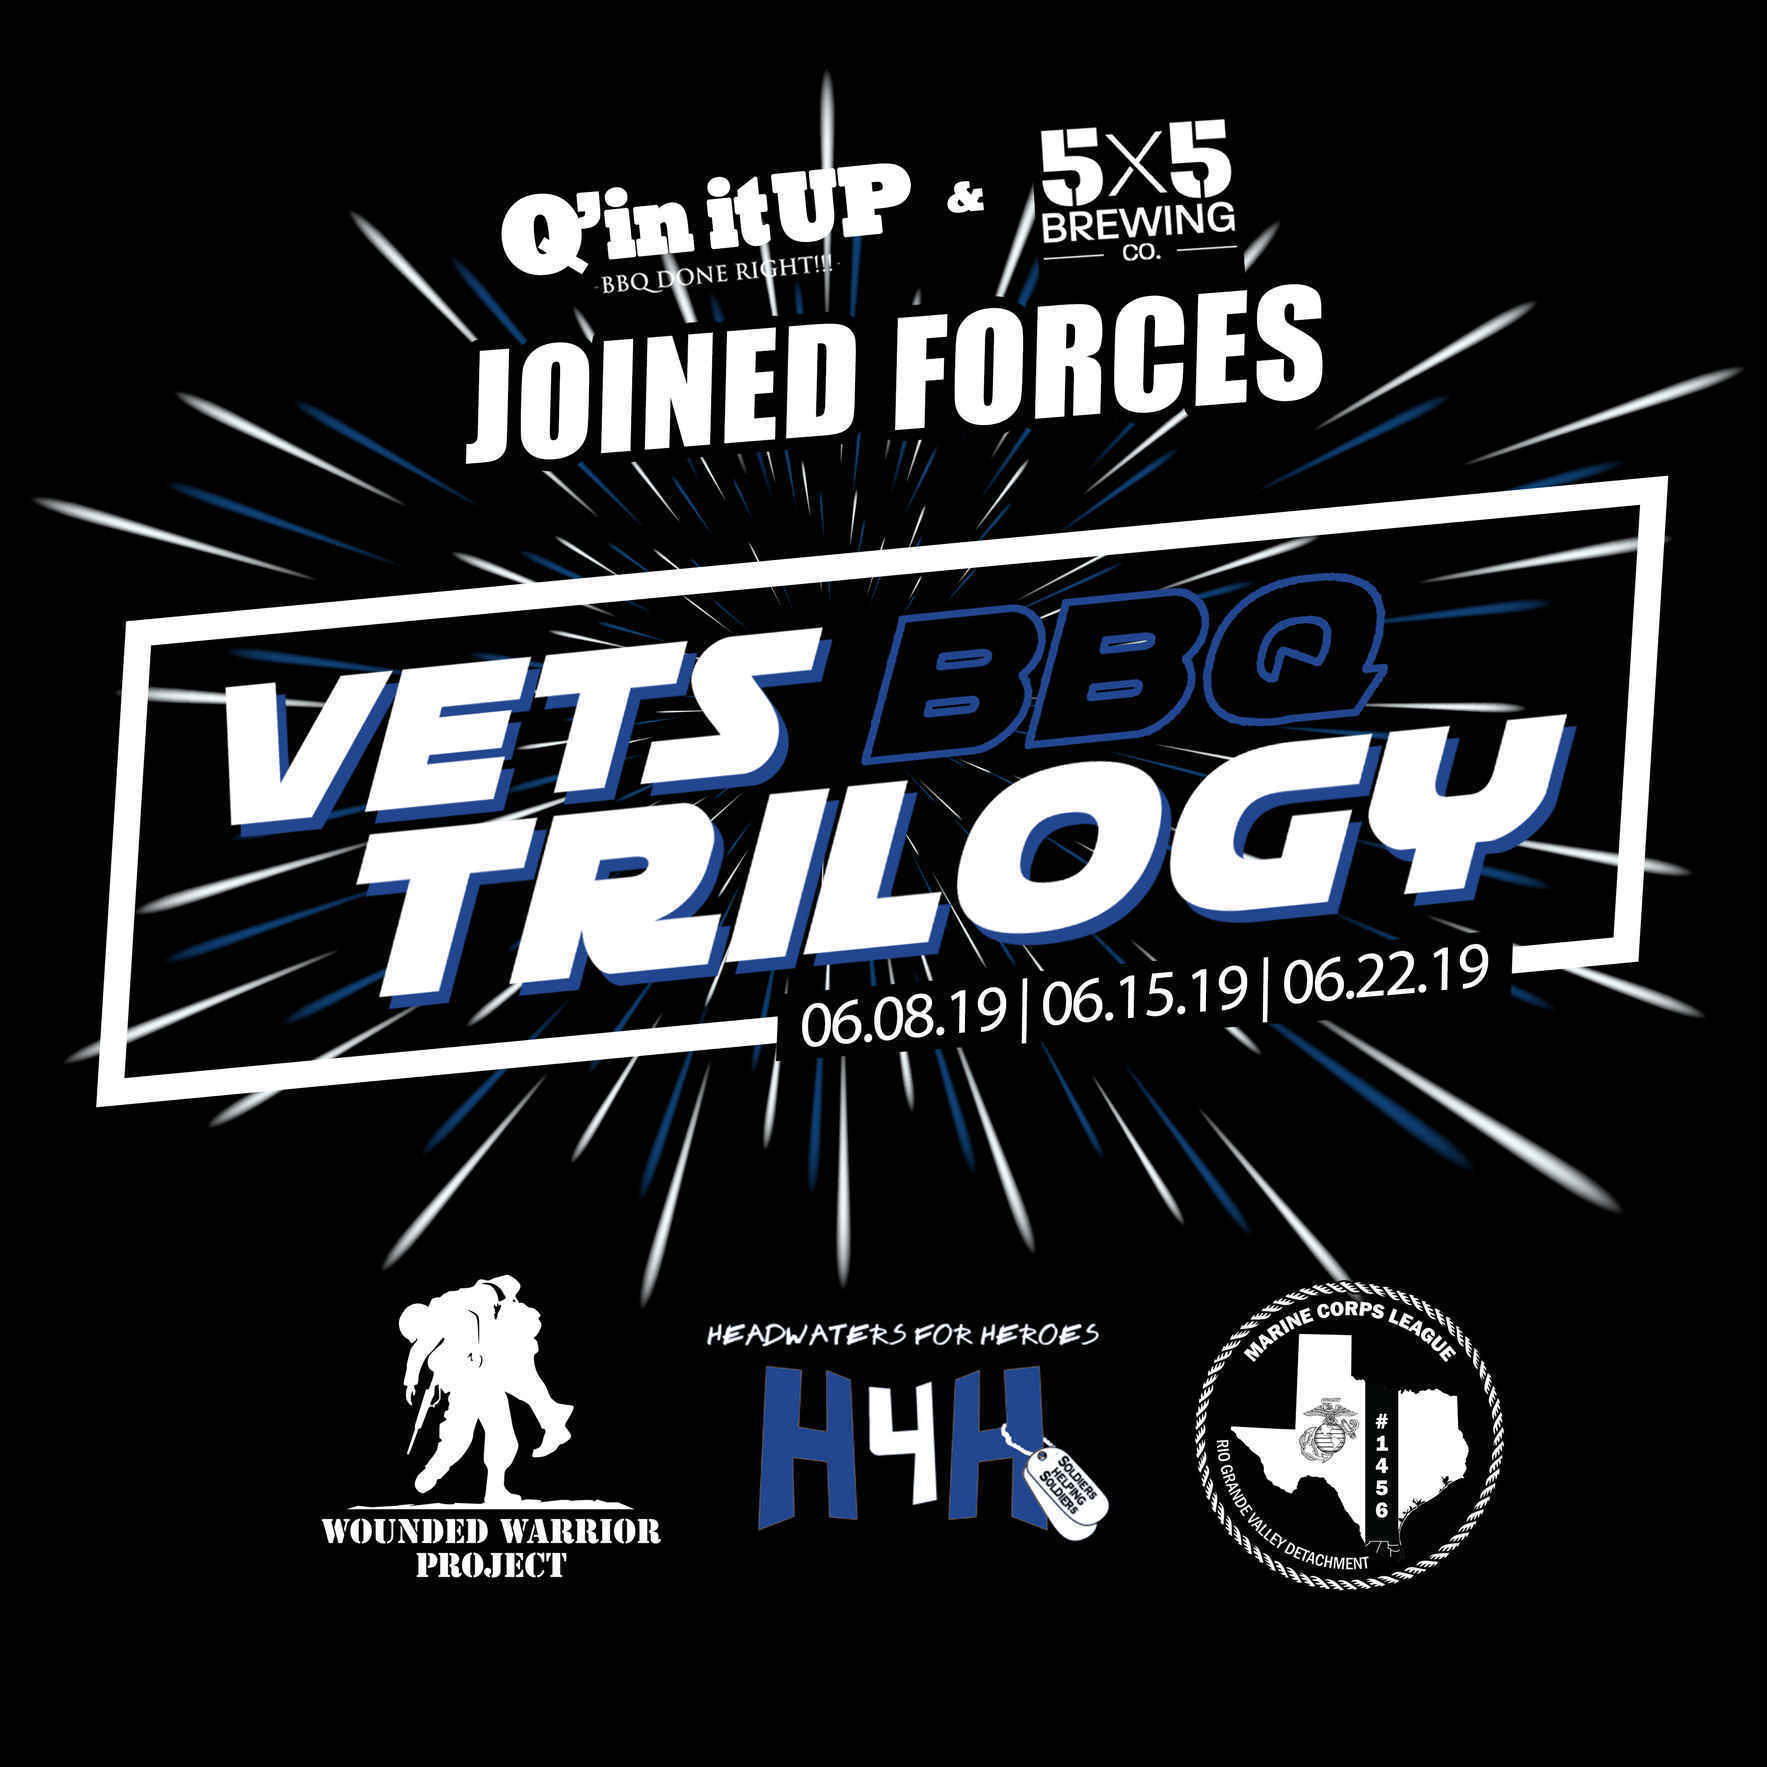 Episode 1 of Vets BBQ Trilogy by Q'in itUP BBQ & 5x5 Brewing image